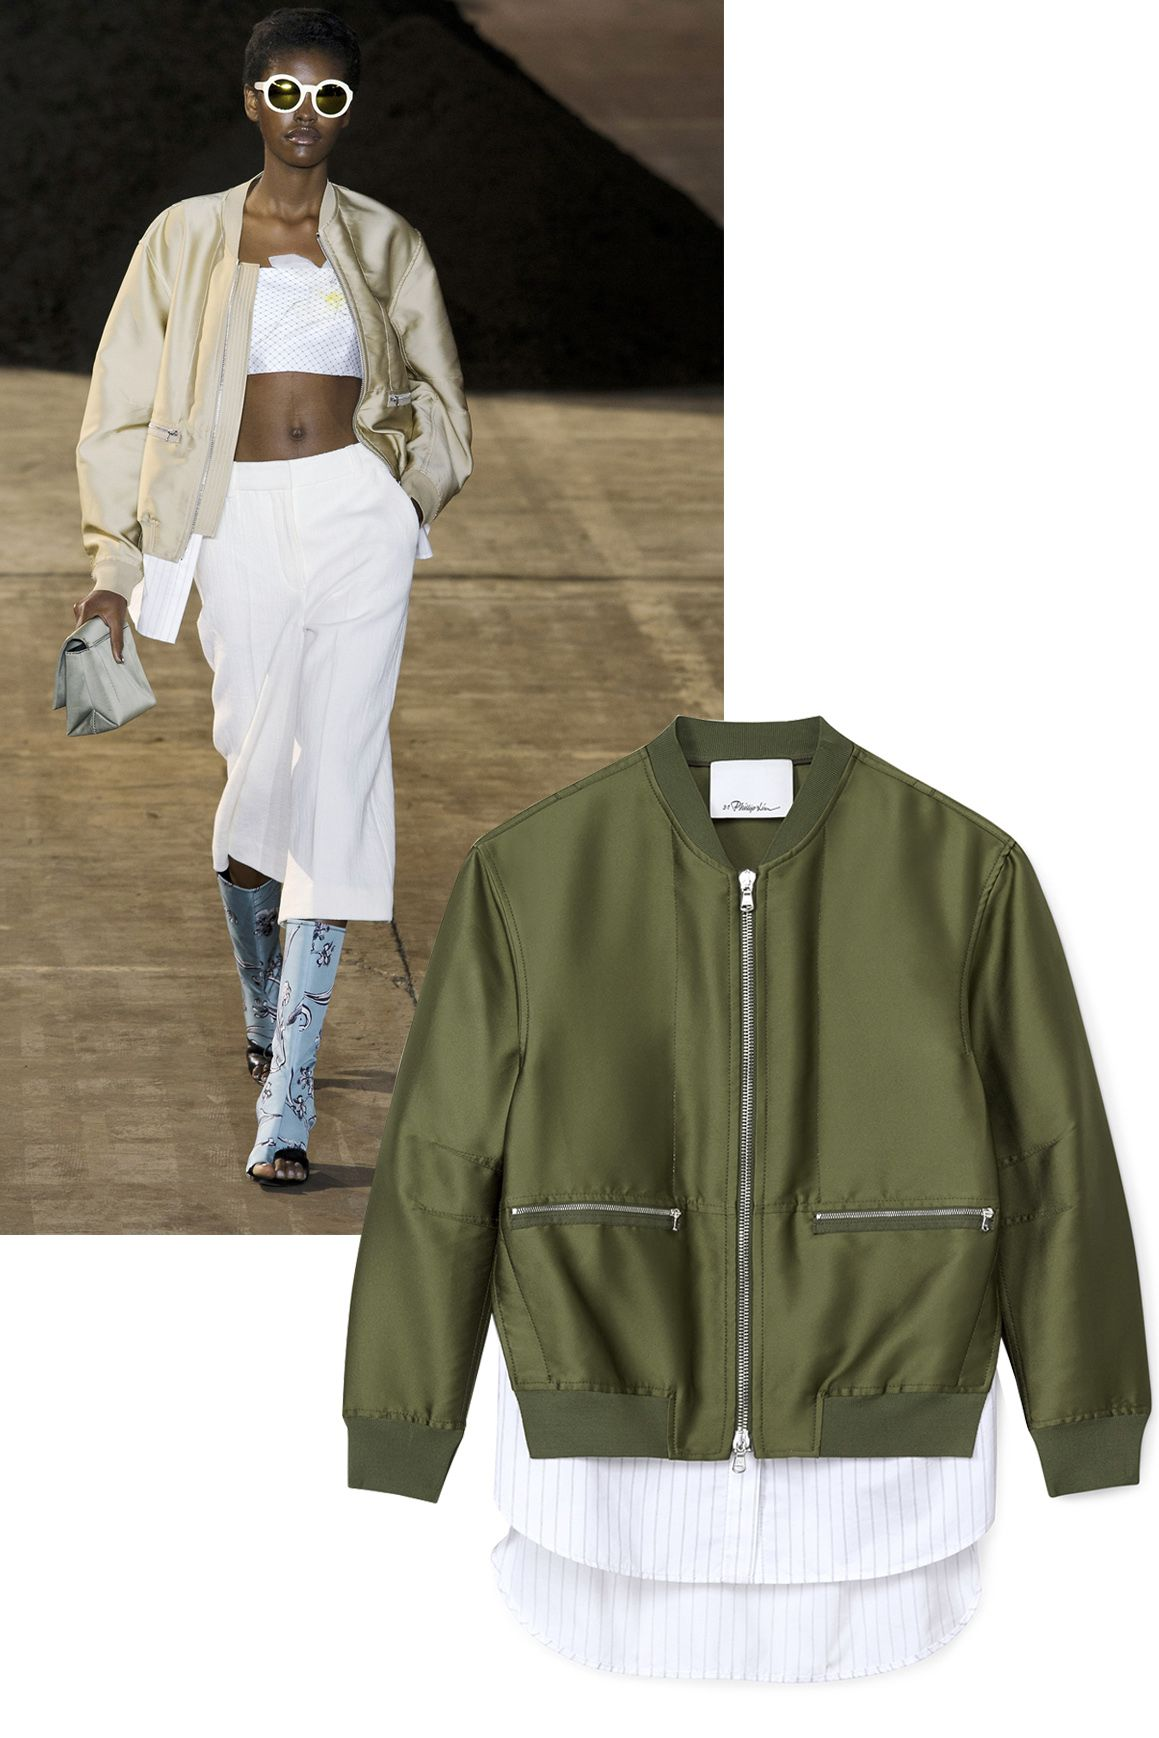 "<p>""For spring 2016, the design team and I explored the past, present and future of the brand's DNA which has always been 'youthful elegance'.""—Phillip Lim </p><p>        <em><strong>3.1 Phillip Lim</strong> jacket, $850, <strong><a href=""https://shop.harpersbazaar.com/designers/0-9/31-phillip-lim/tromp-loeil-bomber-jacket-8428.html"" target=""_blank"">shopBAZAAR.com</a></strong></em><span class=""redactor-invisible-space""><em>.</em><br></span></p>"